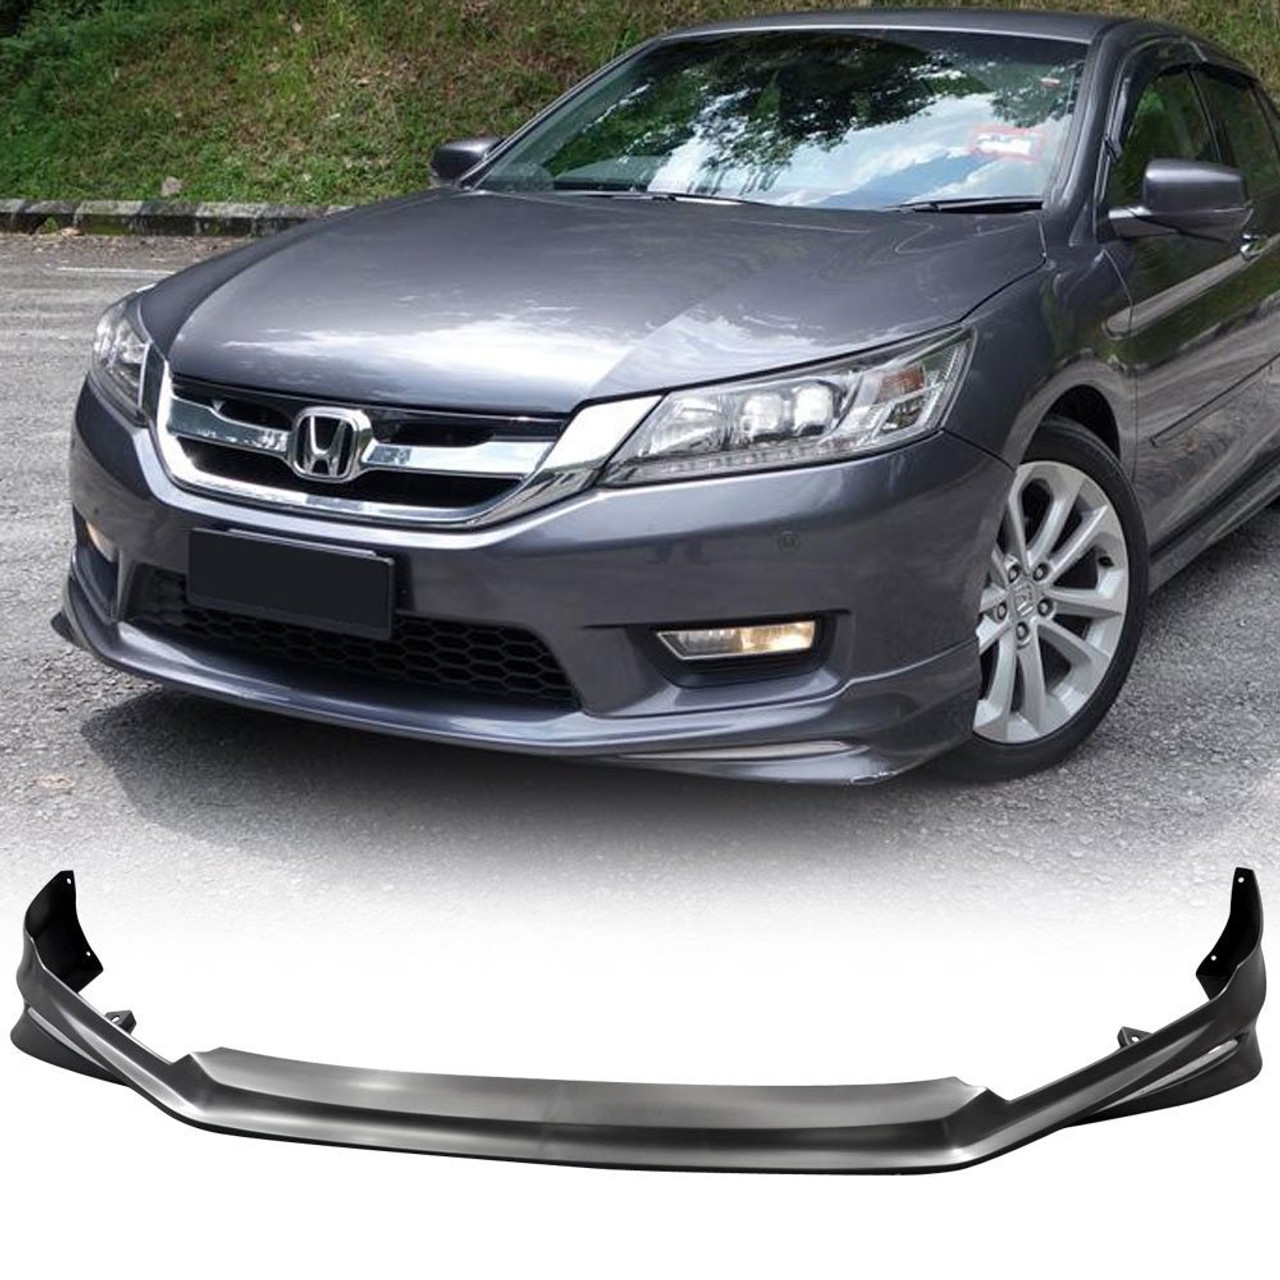 small resolution of 1998 honda accord front emblem style